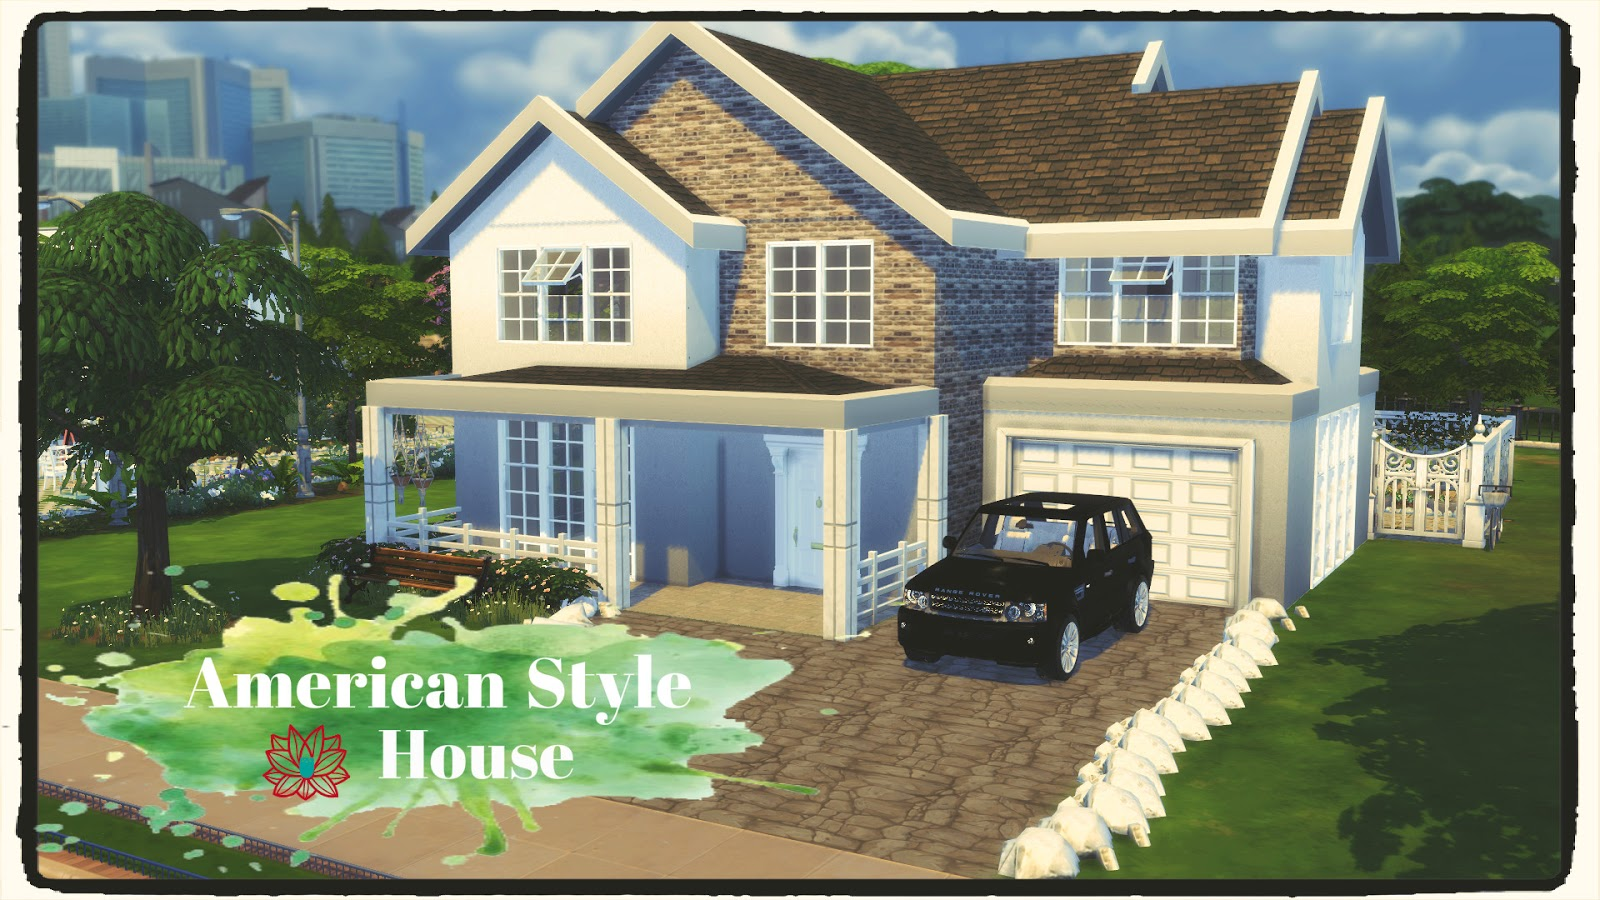 Sims 4 american style house build decoration dinha for Houses to build